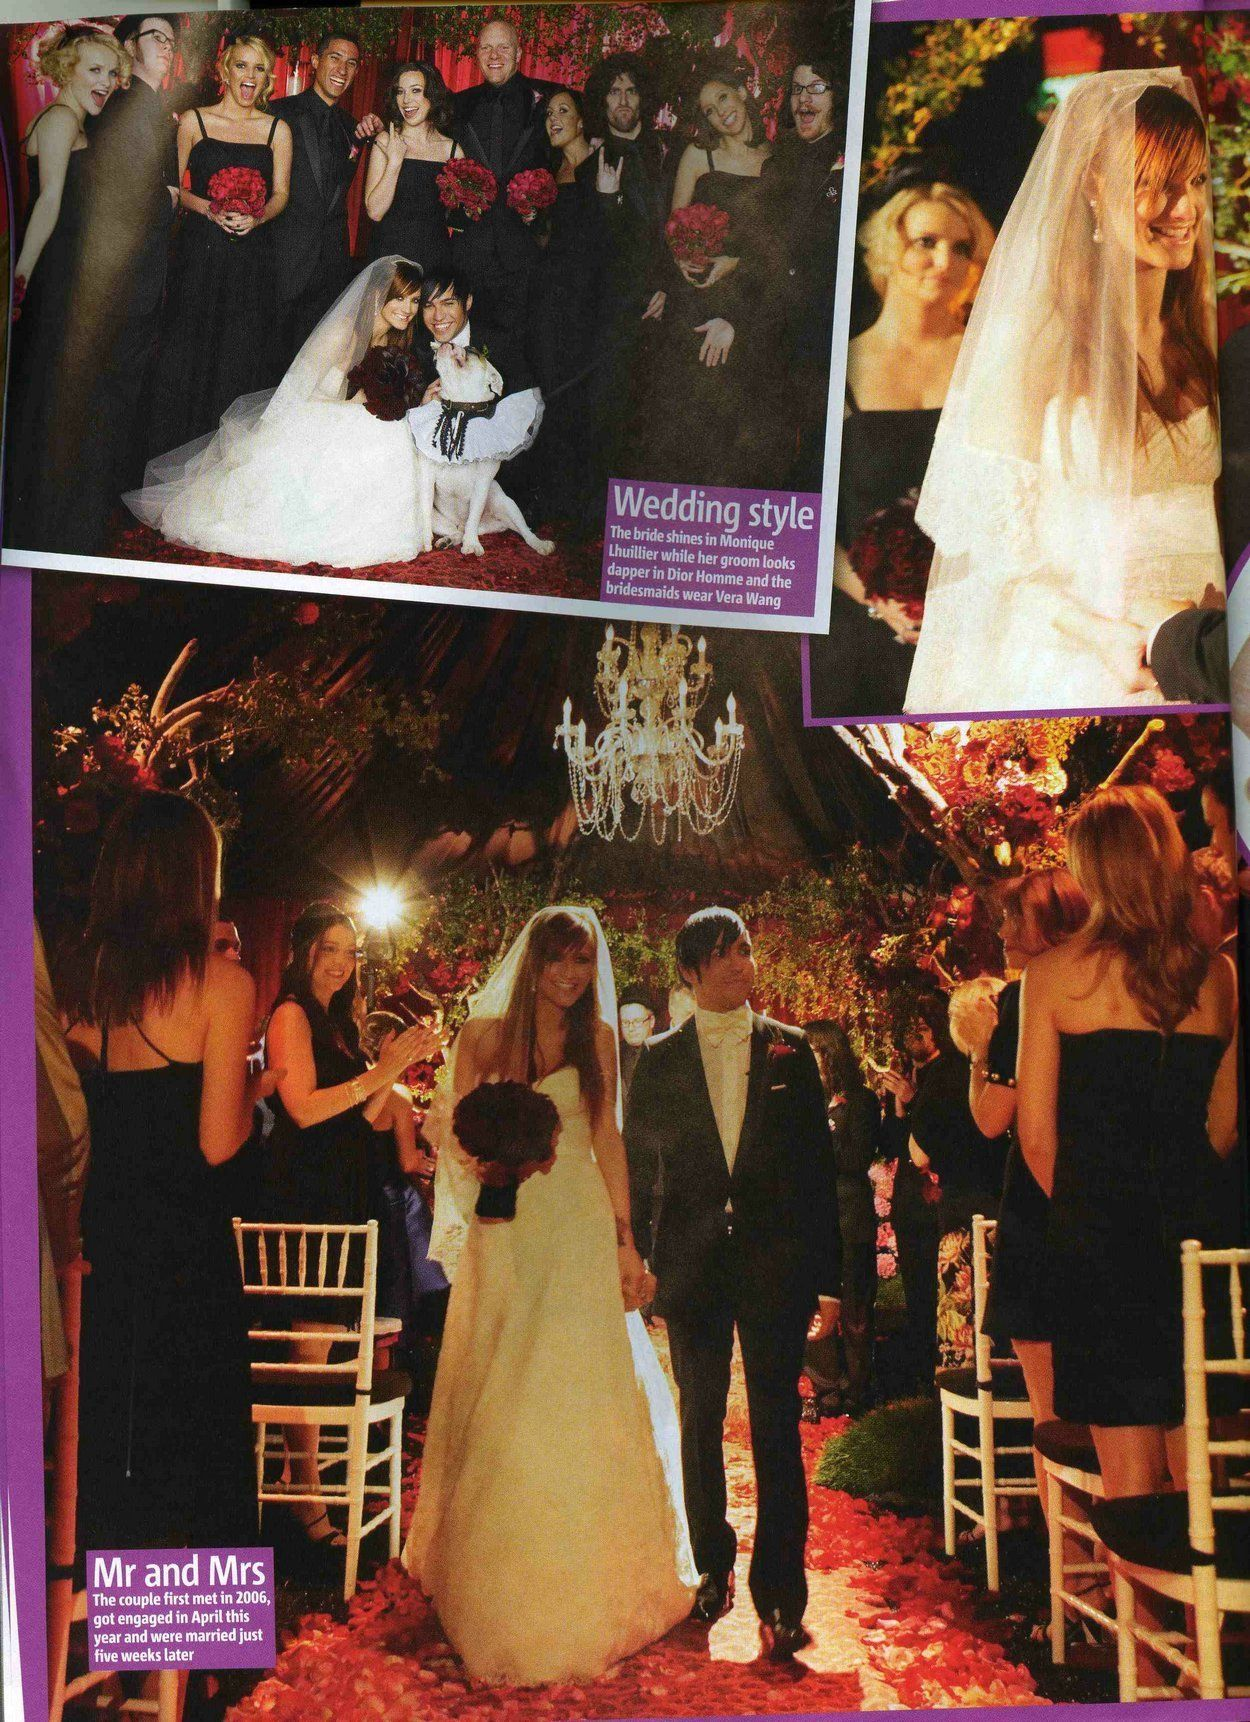 Pete Wentz And Ashlee Simpson Yeah I Know But A Beautiful Wedding Love The Darker Fl